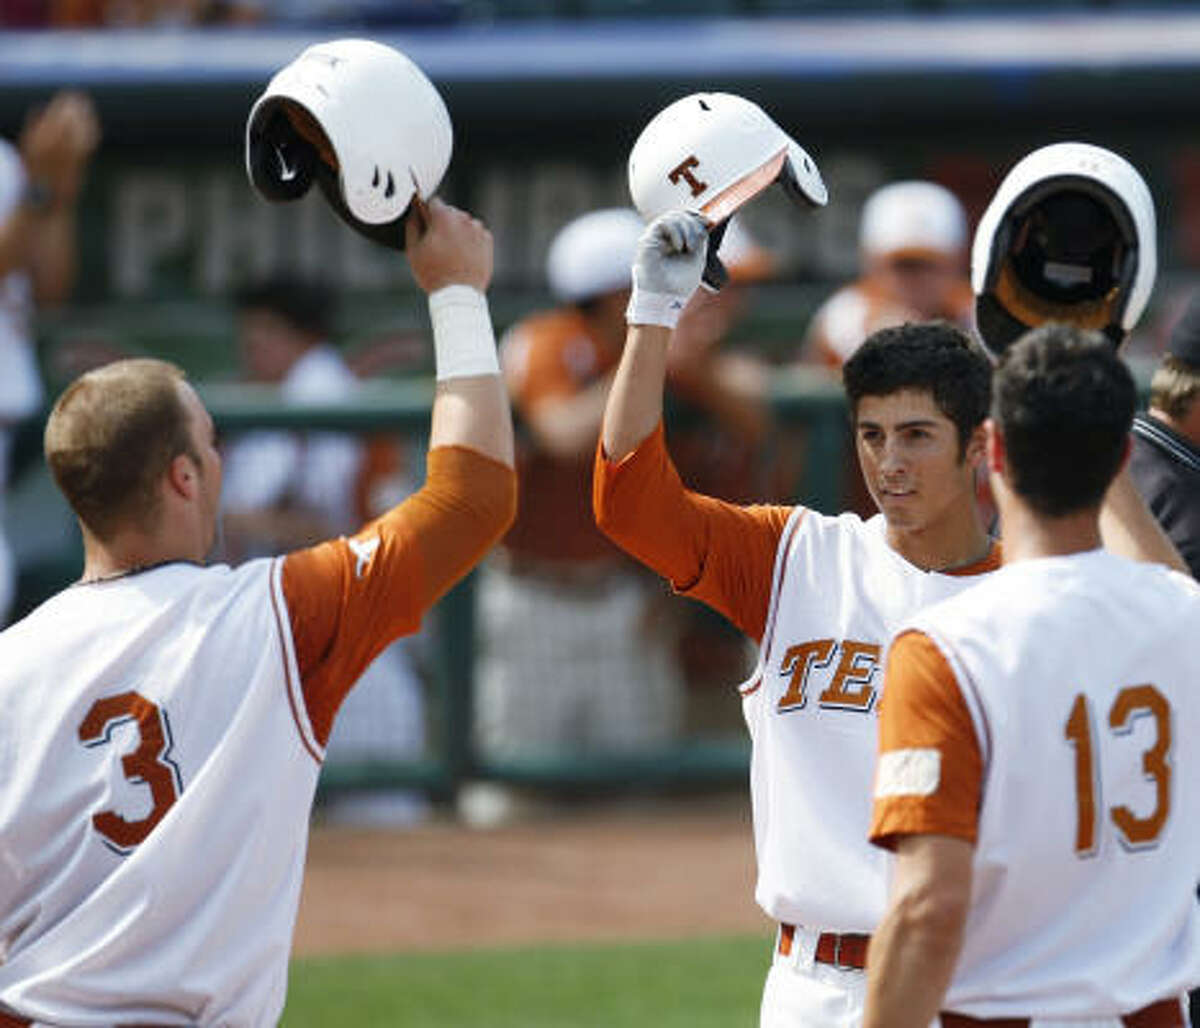 The Longhorns claimed their third conference championship in four years with a 5-4 win over the Aggies.